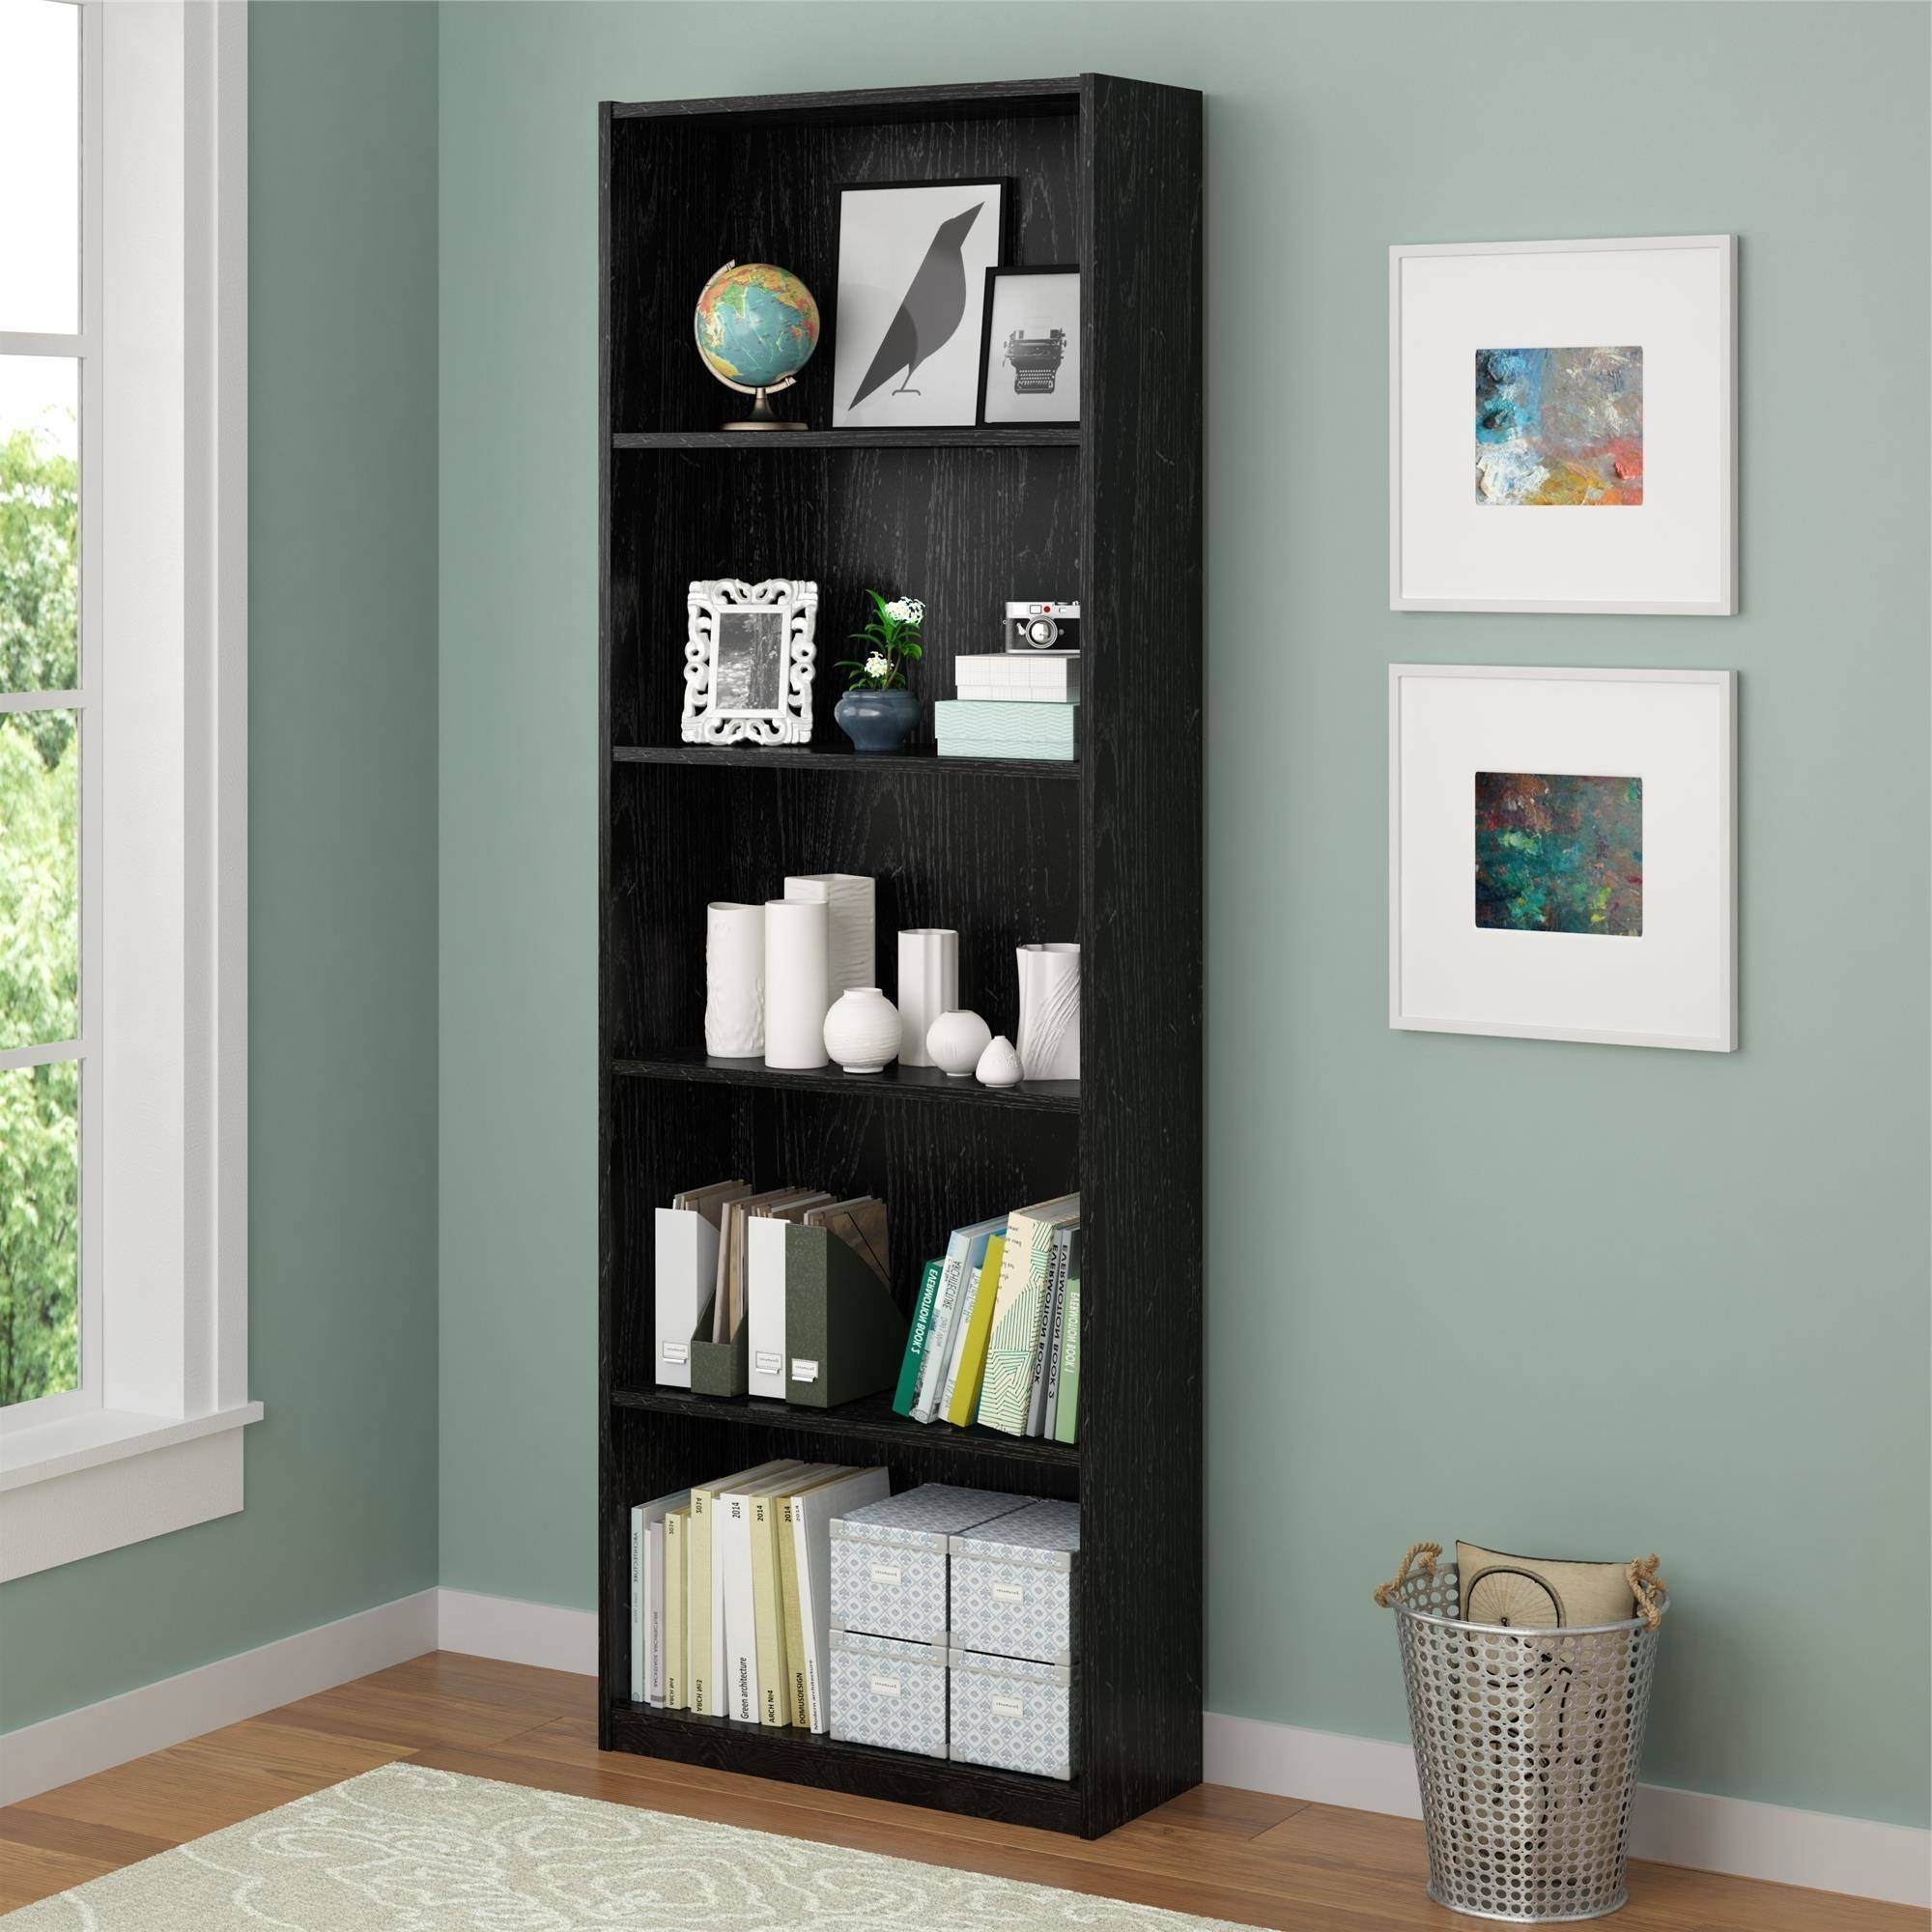 Walmart Bookcases With Regard To Fashionable Ameriwood 5 Shelf Bookcases, Set Of 2 (mix And Match) – Walmart (View 1 of 15)